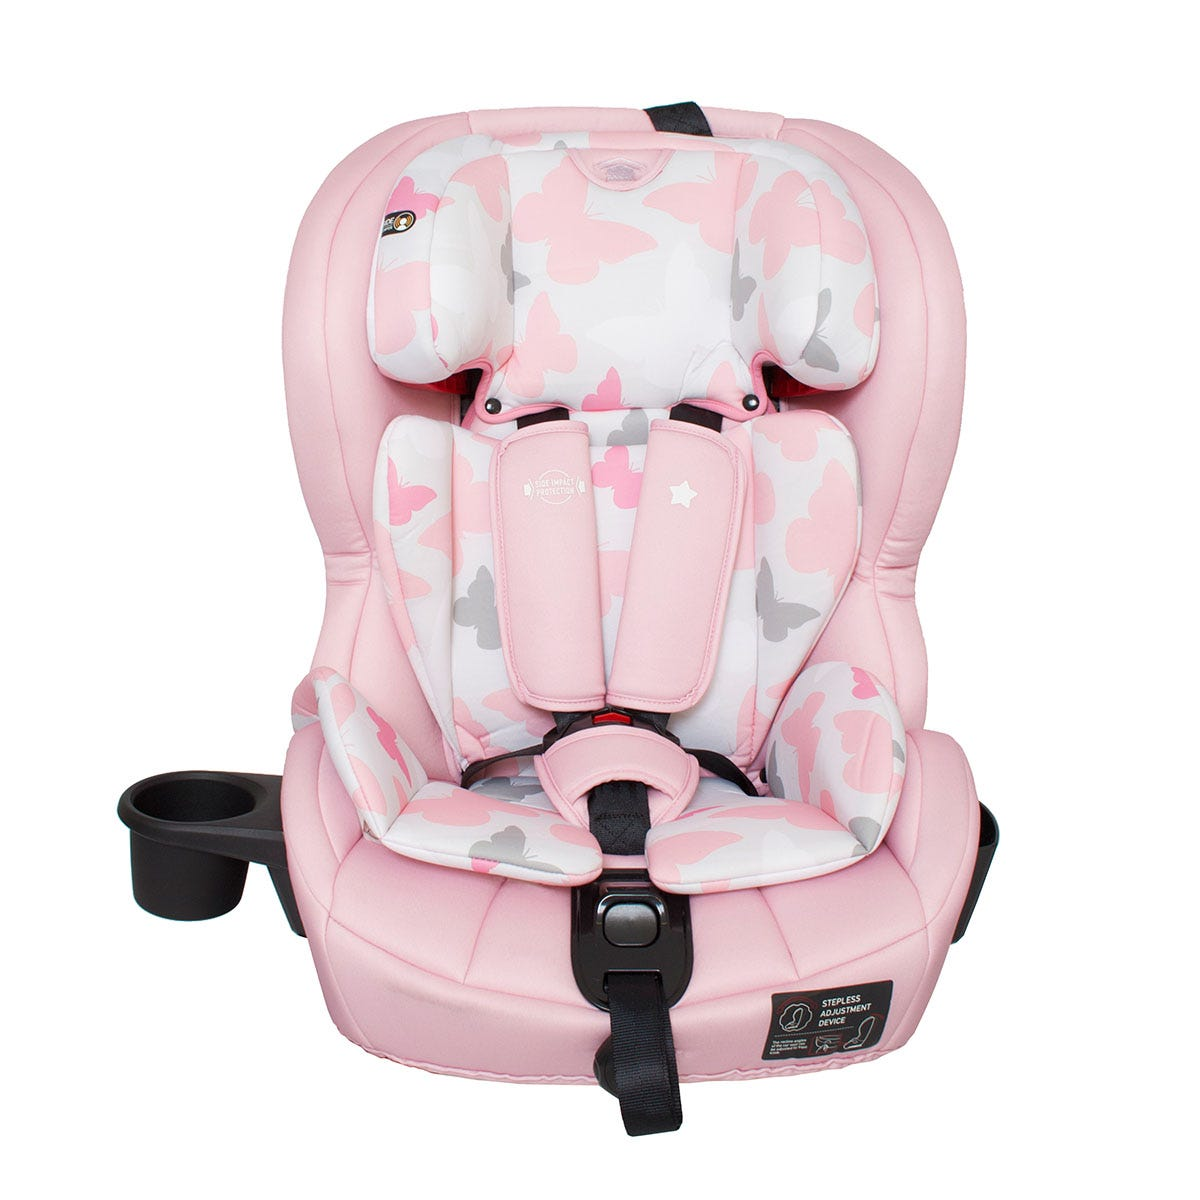 My Babiie Group 1 2 3 Isofix Car Seat - Pink Butterflies